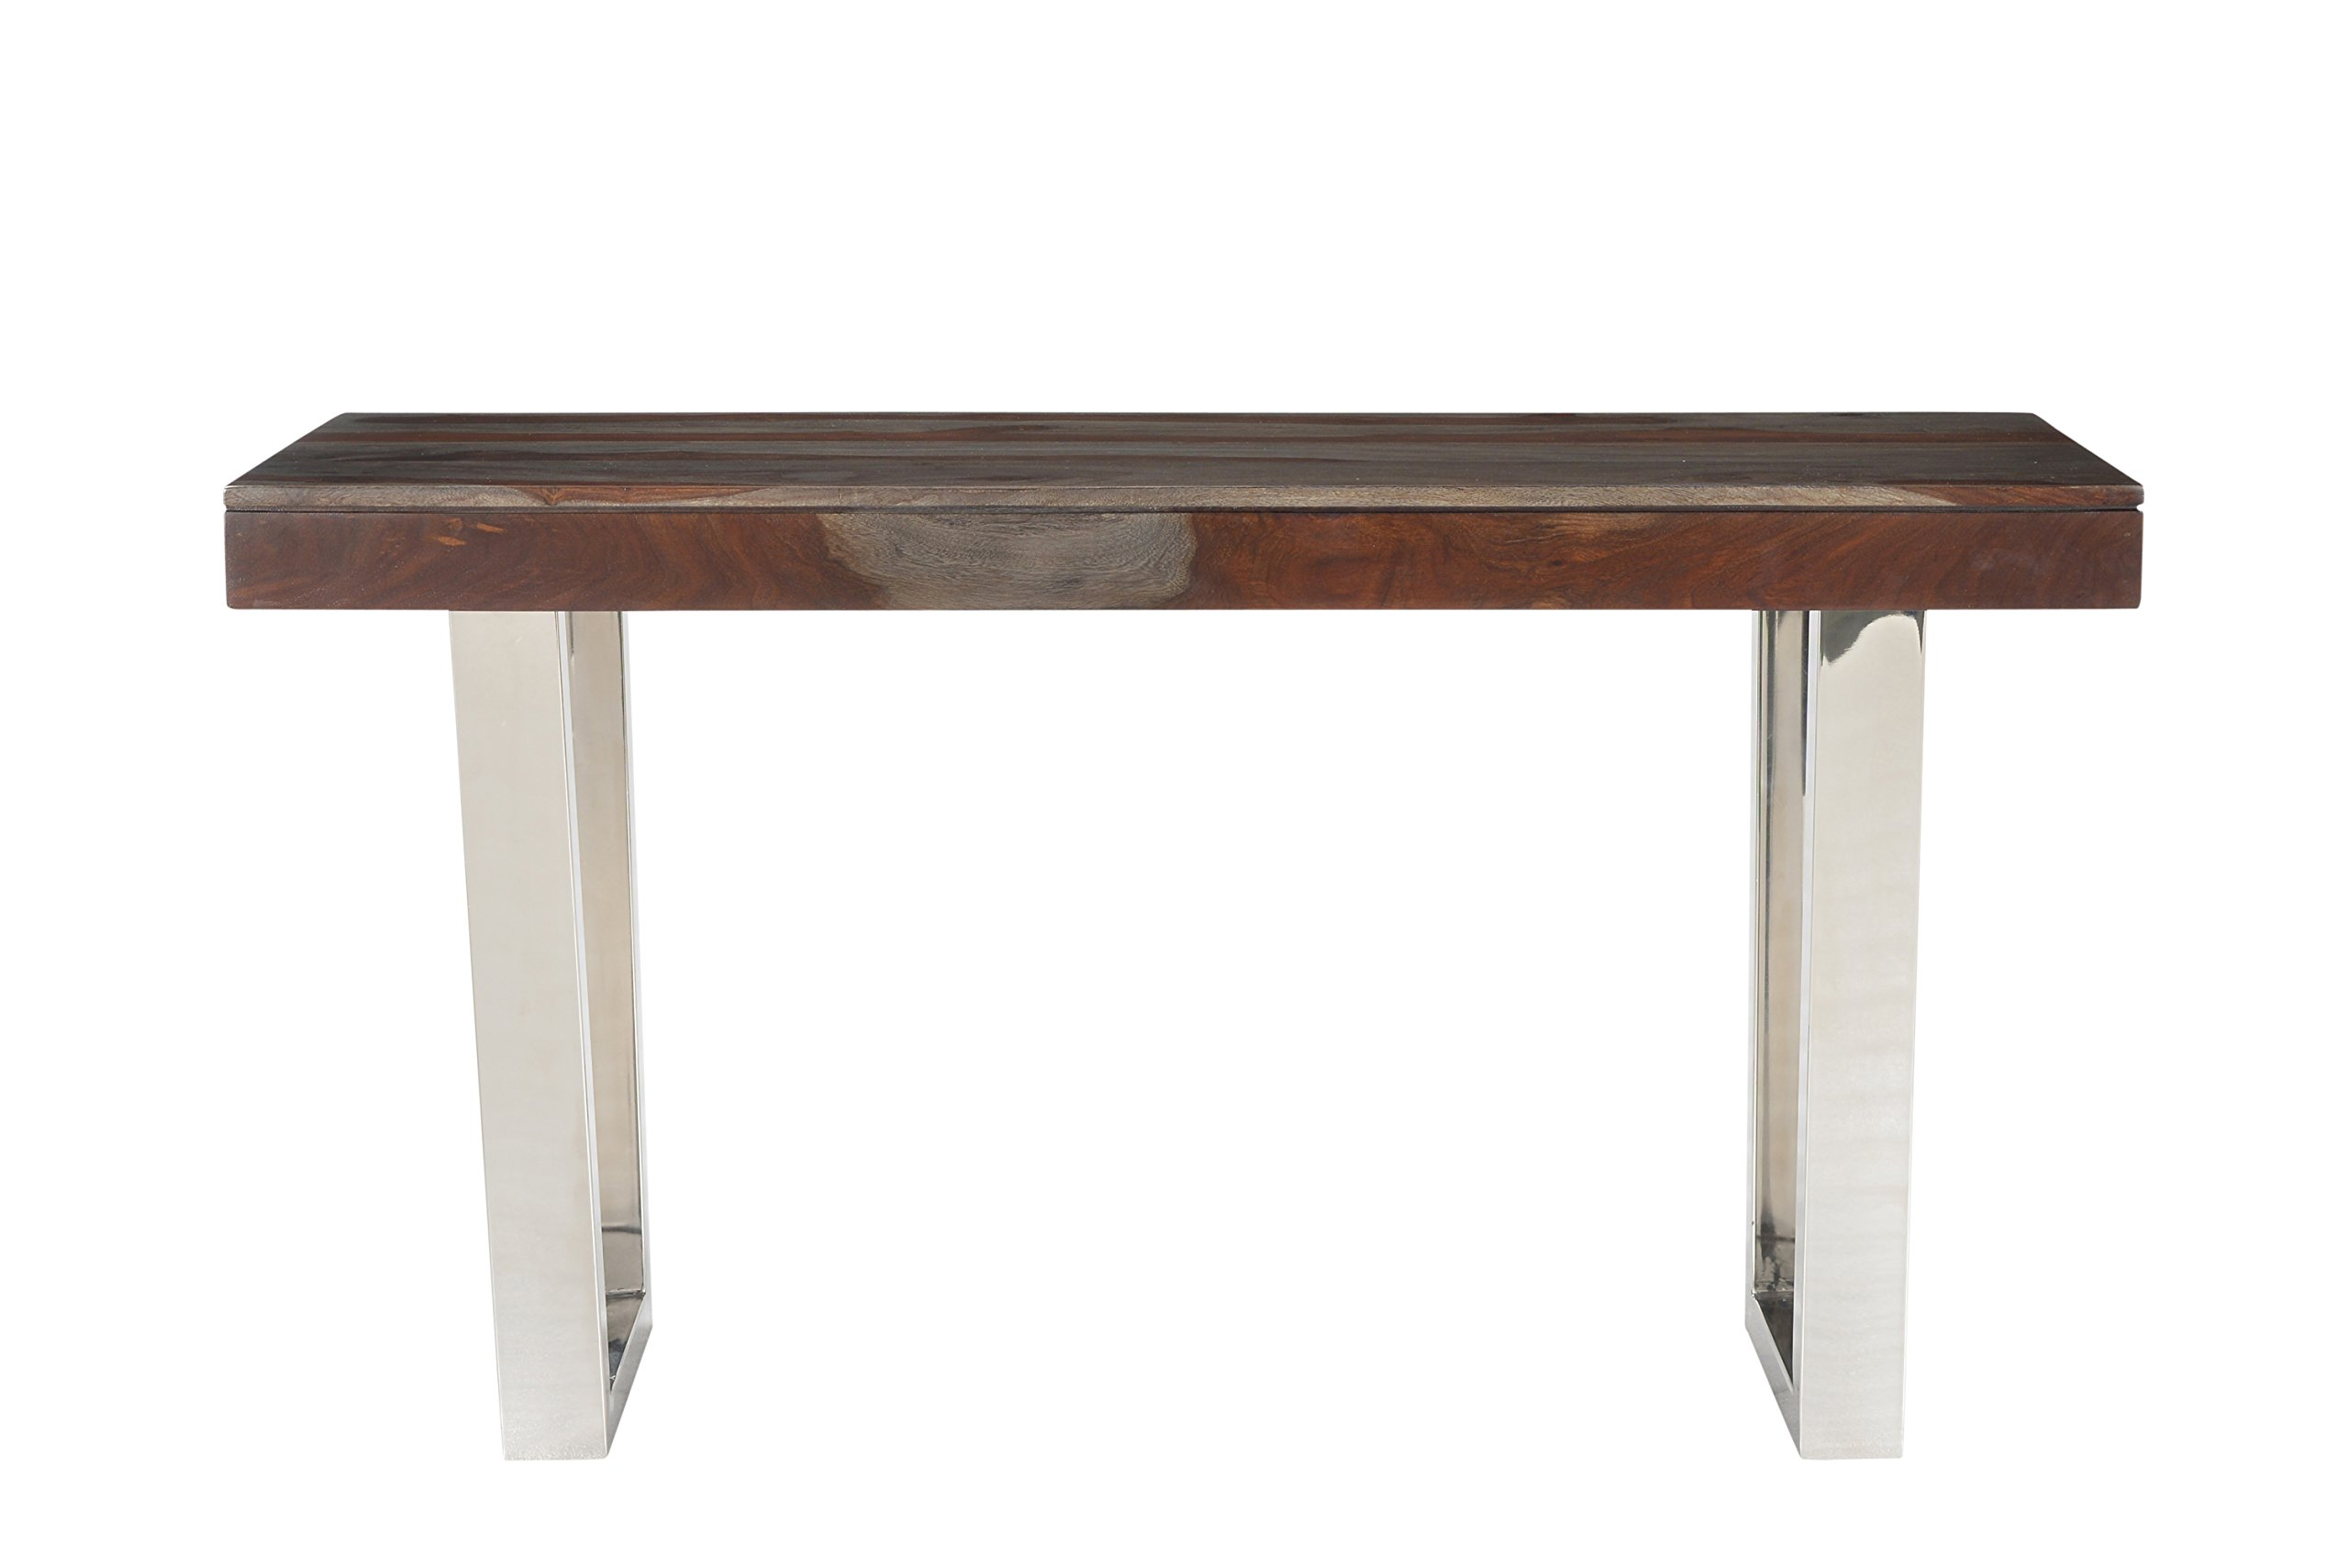 Treasure Trove Stainless Steel Base Grayson Console Table, Grey and Red